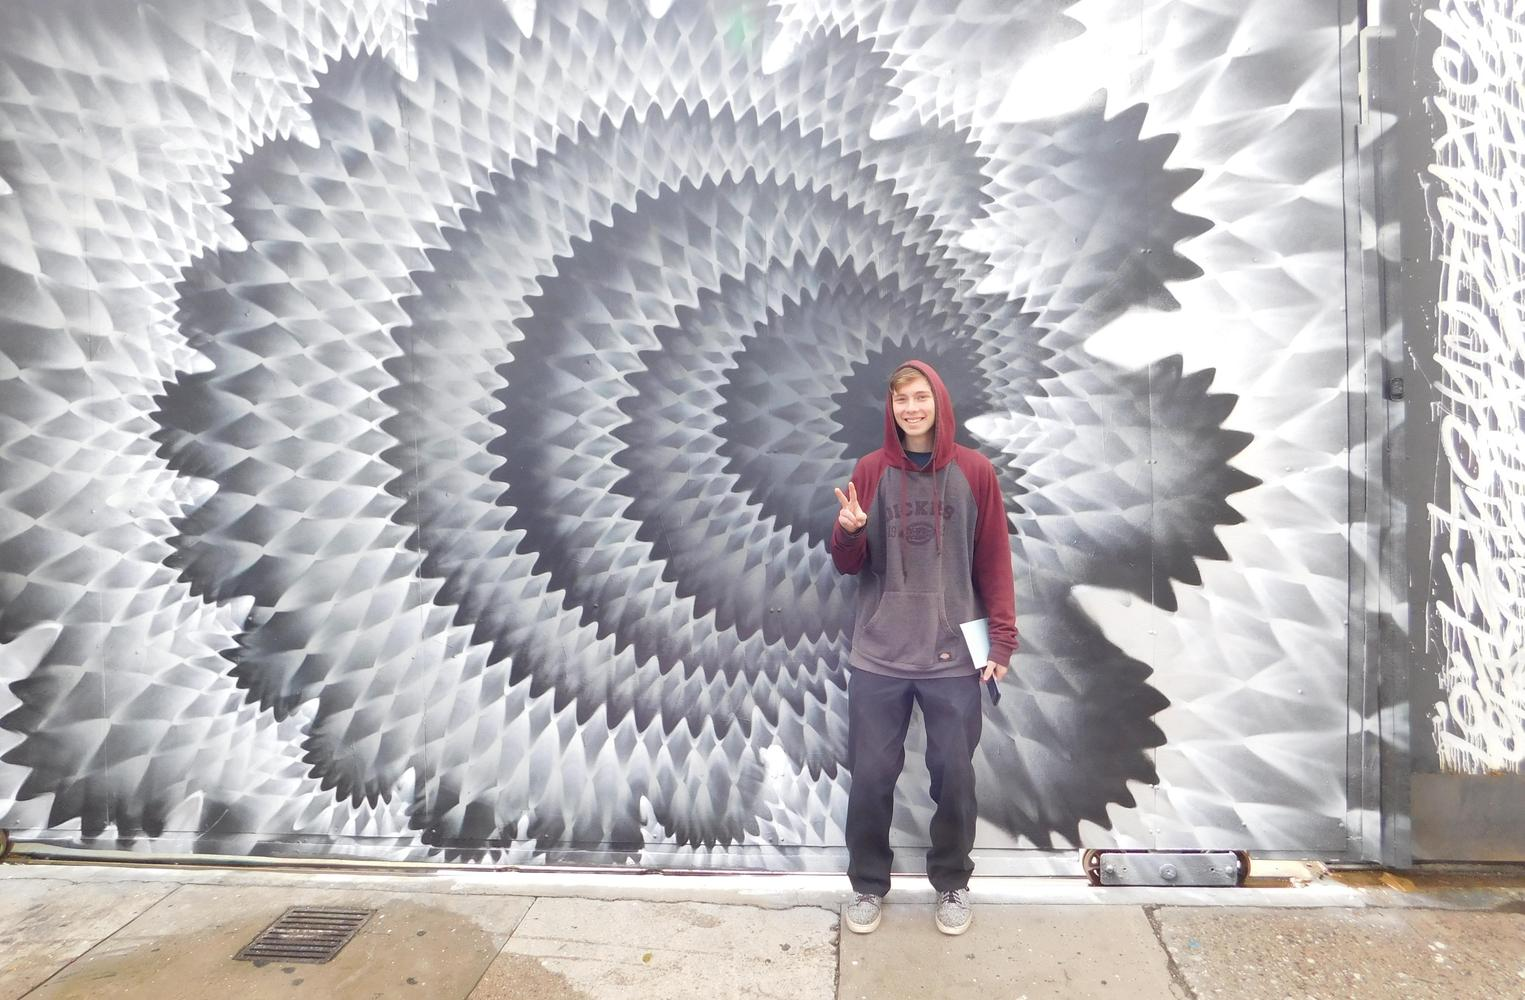 Student by LA Wall Mural